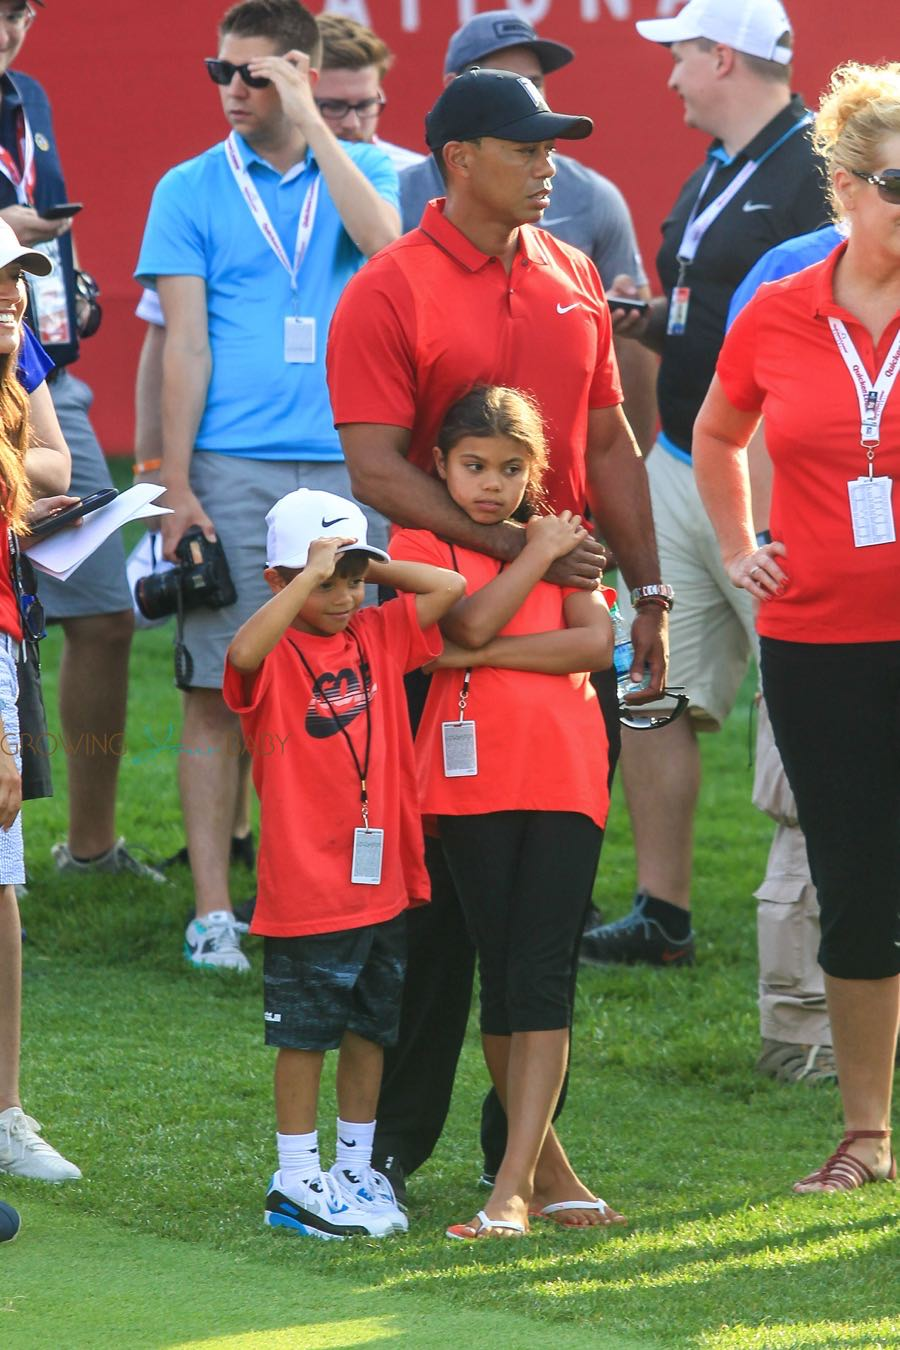 Tiger Woods attends the Quicken Loans National PGA Golf Tournament with his daughter Sam and son Charlie